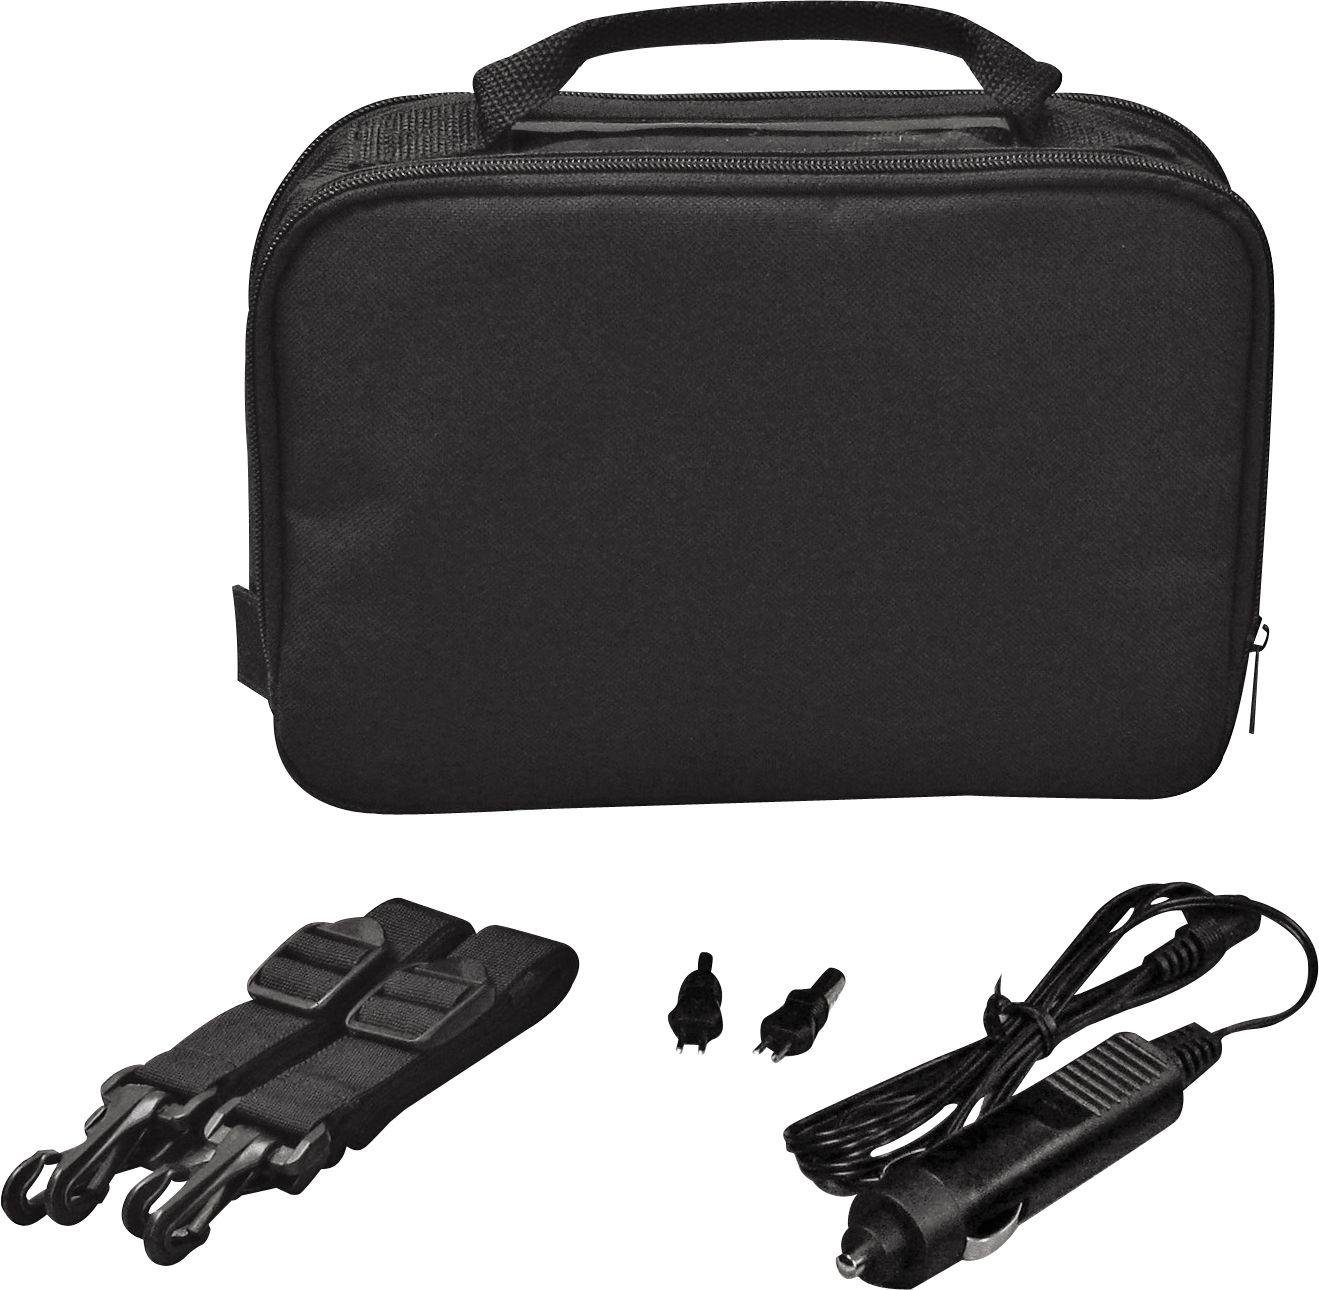 10 Inch - Gadget Bag with - Car Charger - Black